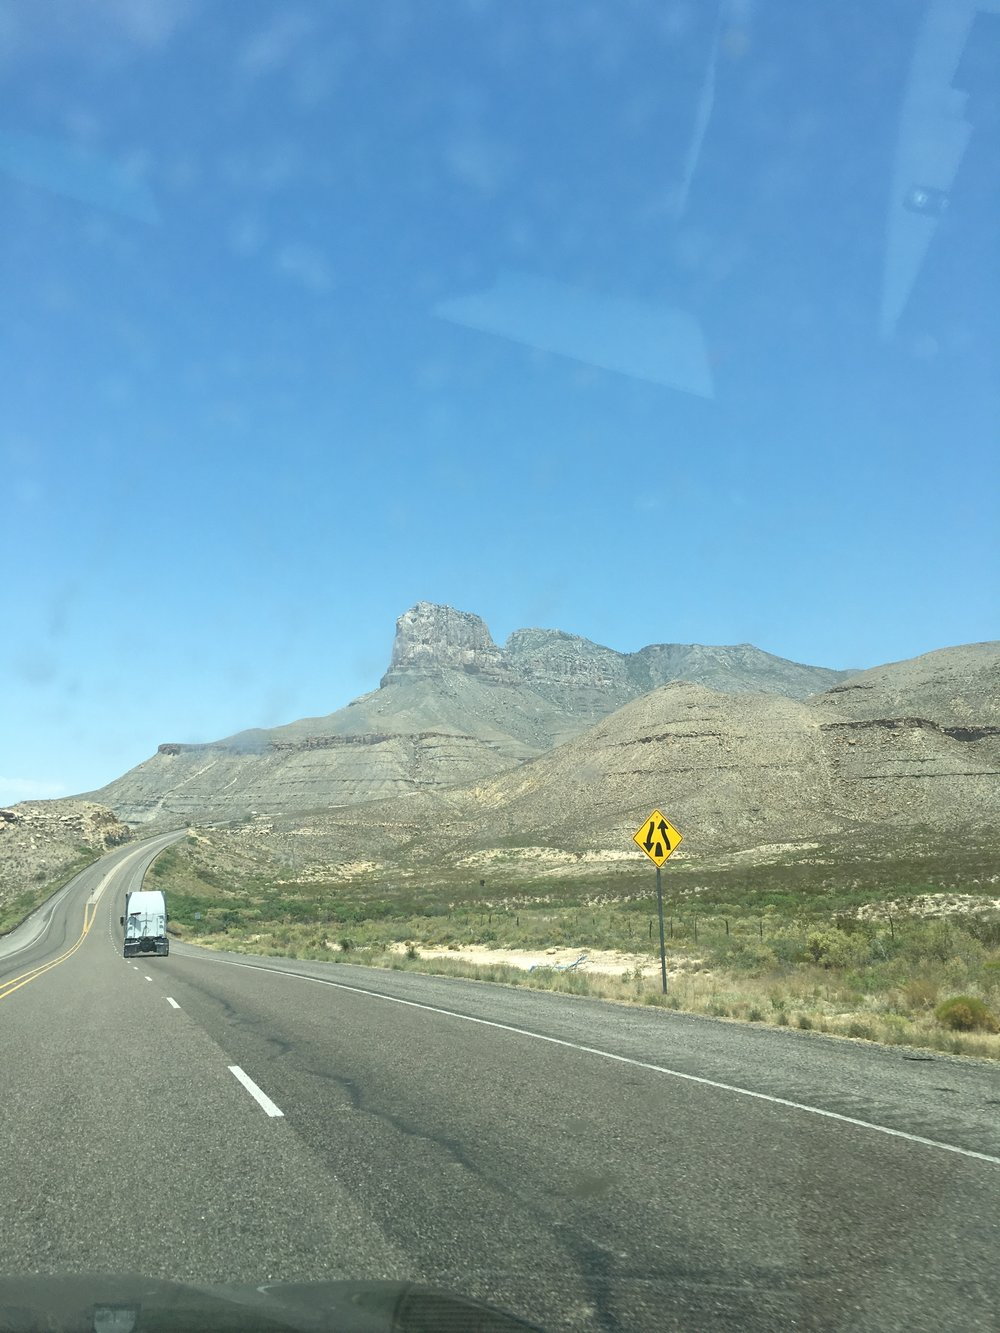 New Mexico's El Capitan and one of my favorite windshield photos!